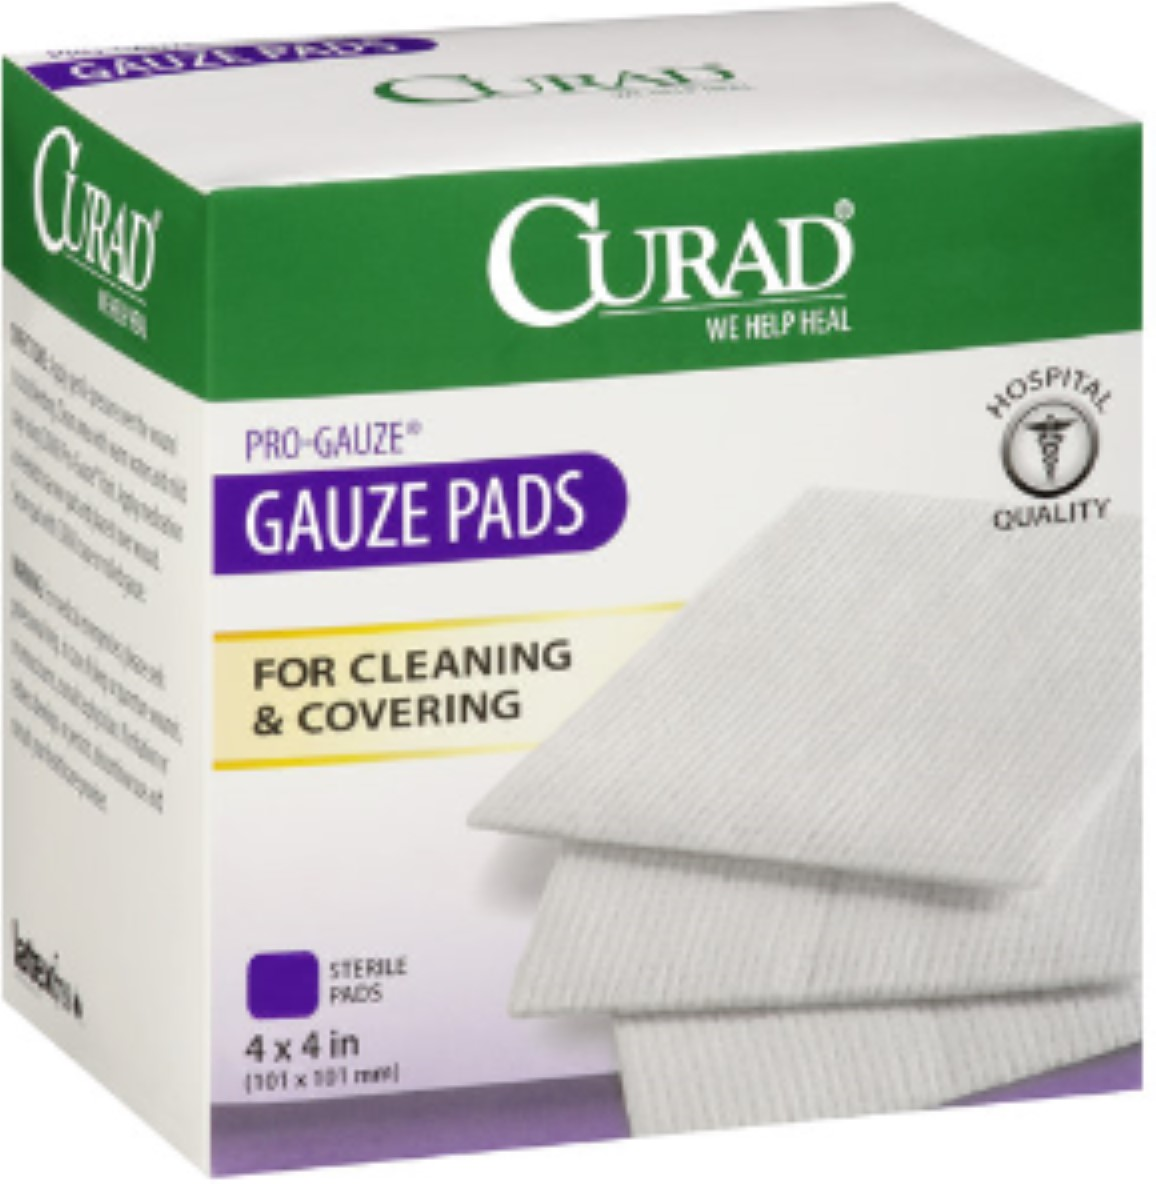 "Curad Sterile Pro-Gauze Pads 4"" x 4"" 10 ea (Pack of 4)"